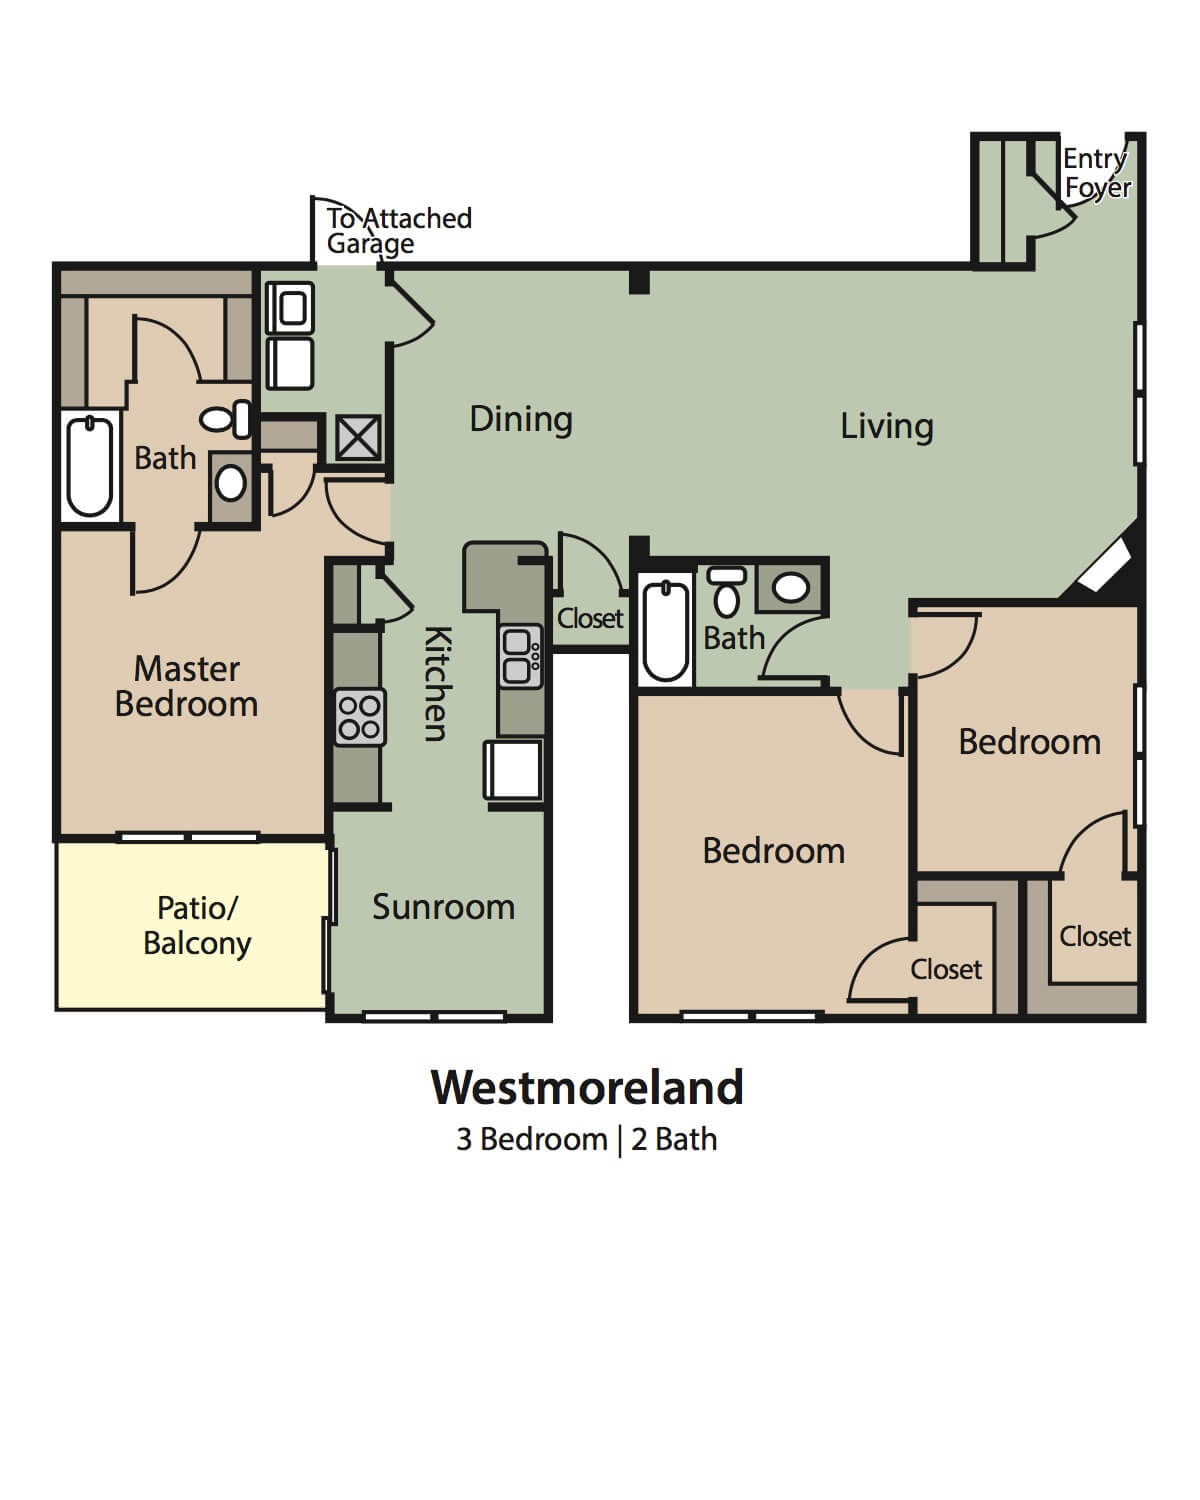 Westmoreland upstairs floor plan, 3 Bedrooms, 2 Baths